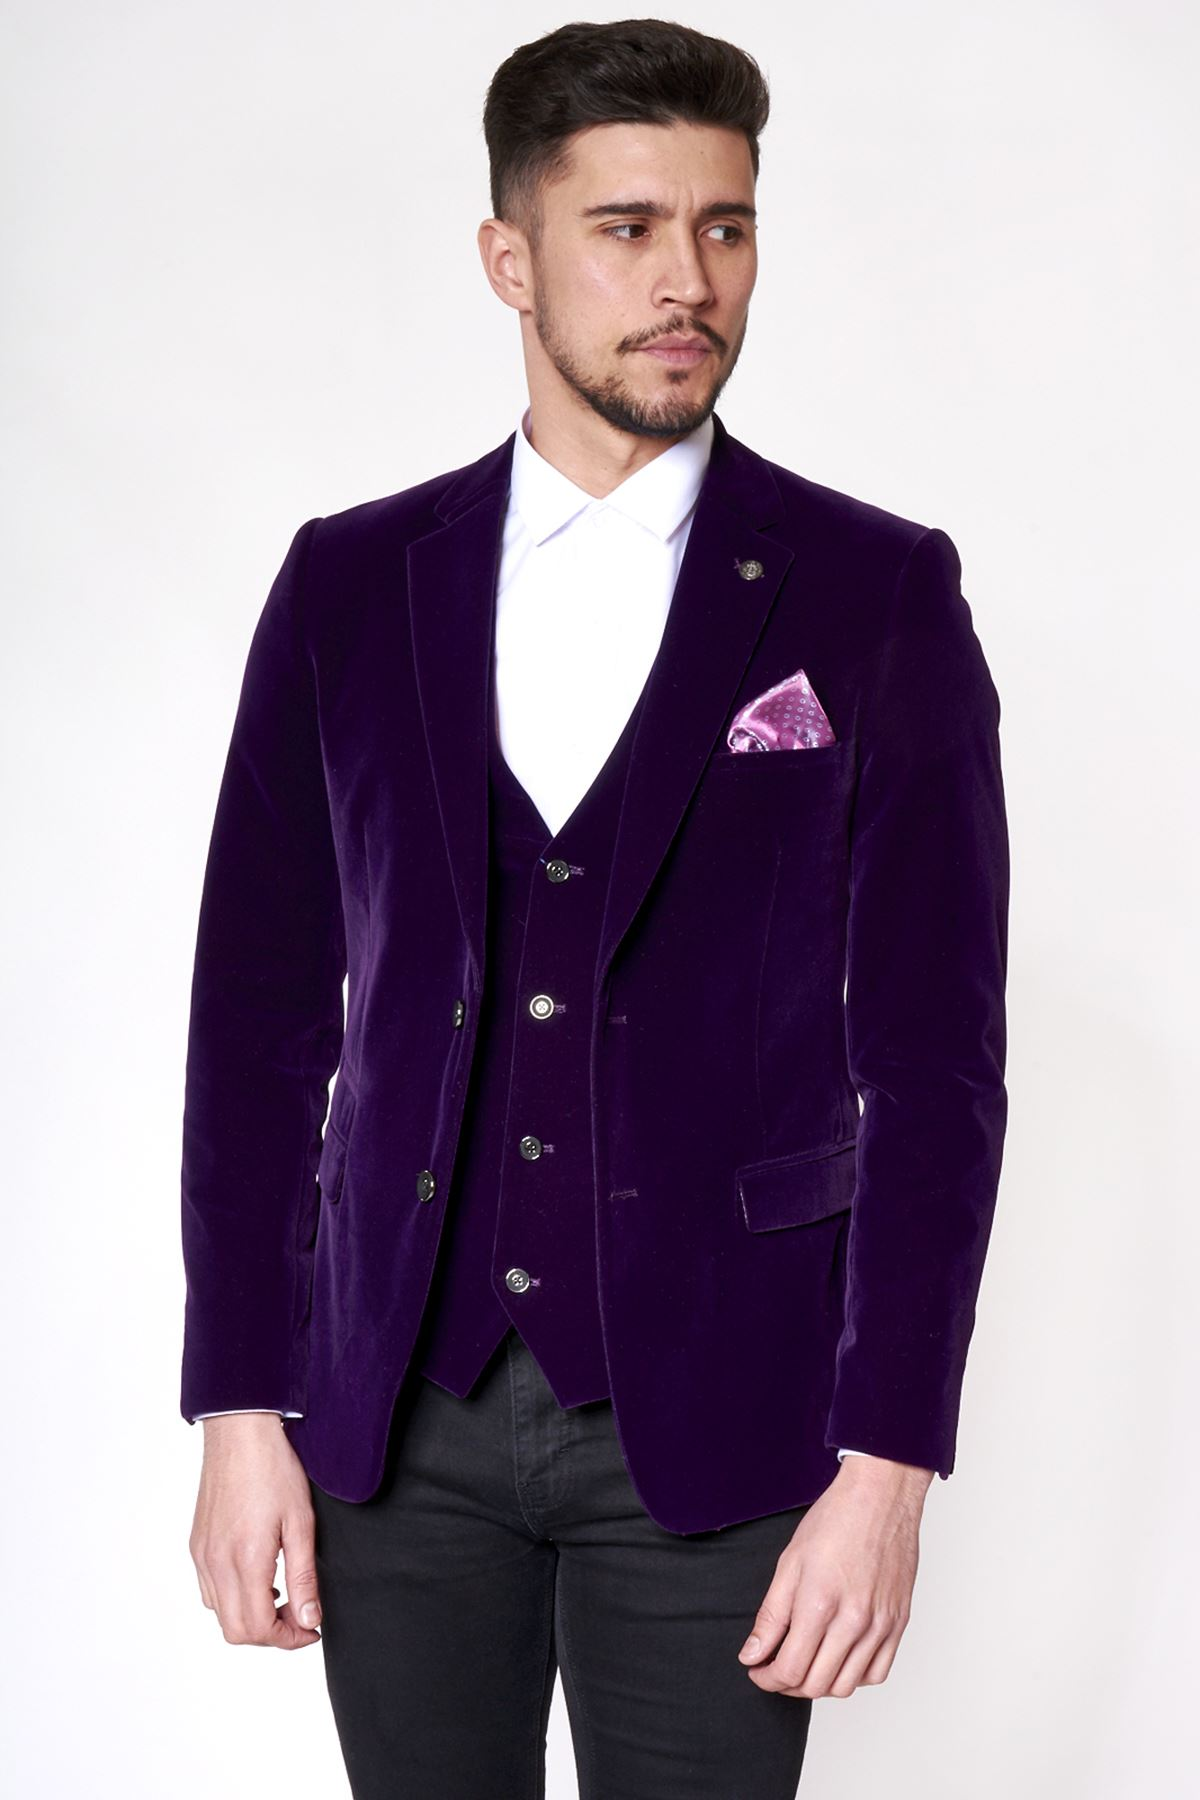 Your Guide to Wearing a Waistcoat. A dark green waistcoat with a brown jacket works well in Winter, and lilac is a favoured choice for weddings. David Gandy wearing a waistcoat PHOTO CREDIT: Pinterest. The Idle Man – Coat The Idle Man – Trousers. Dr Martins – Brogues.